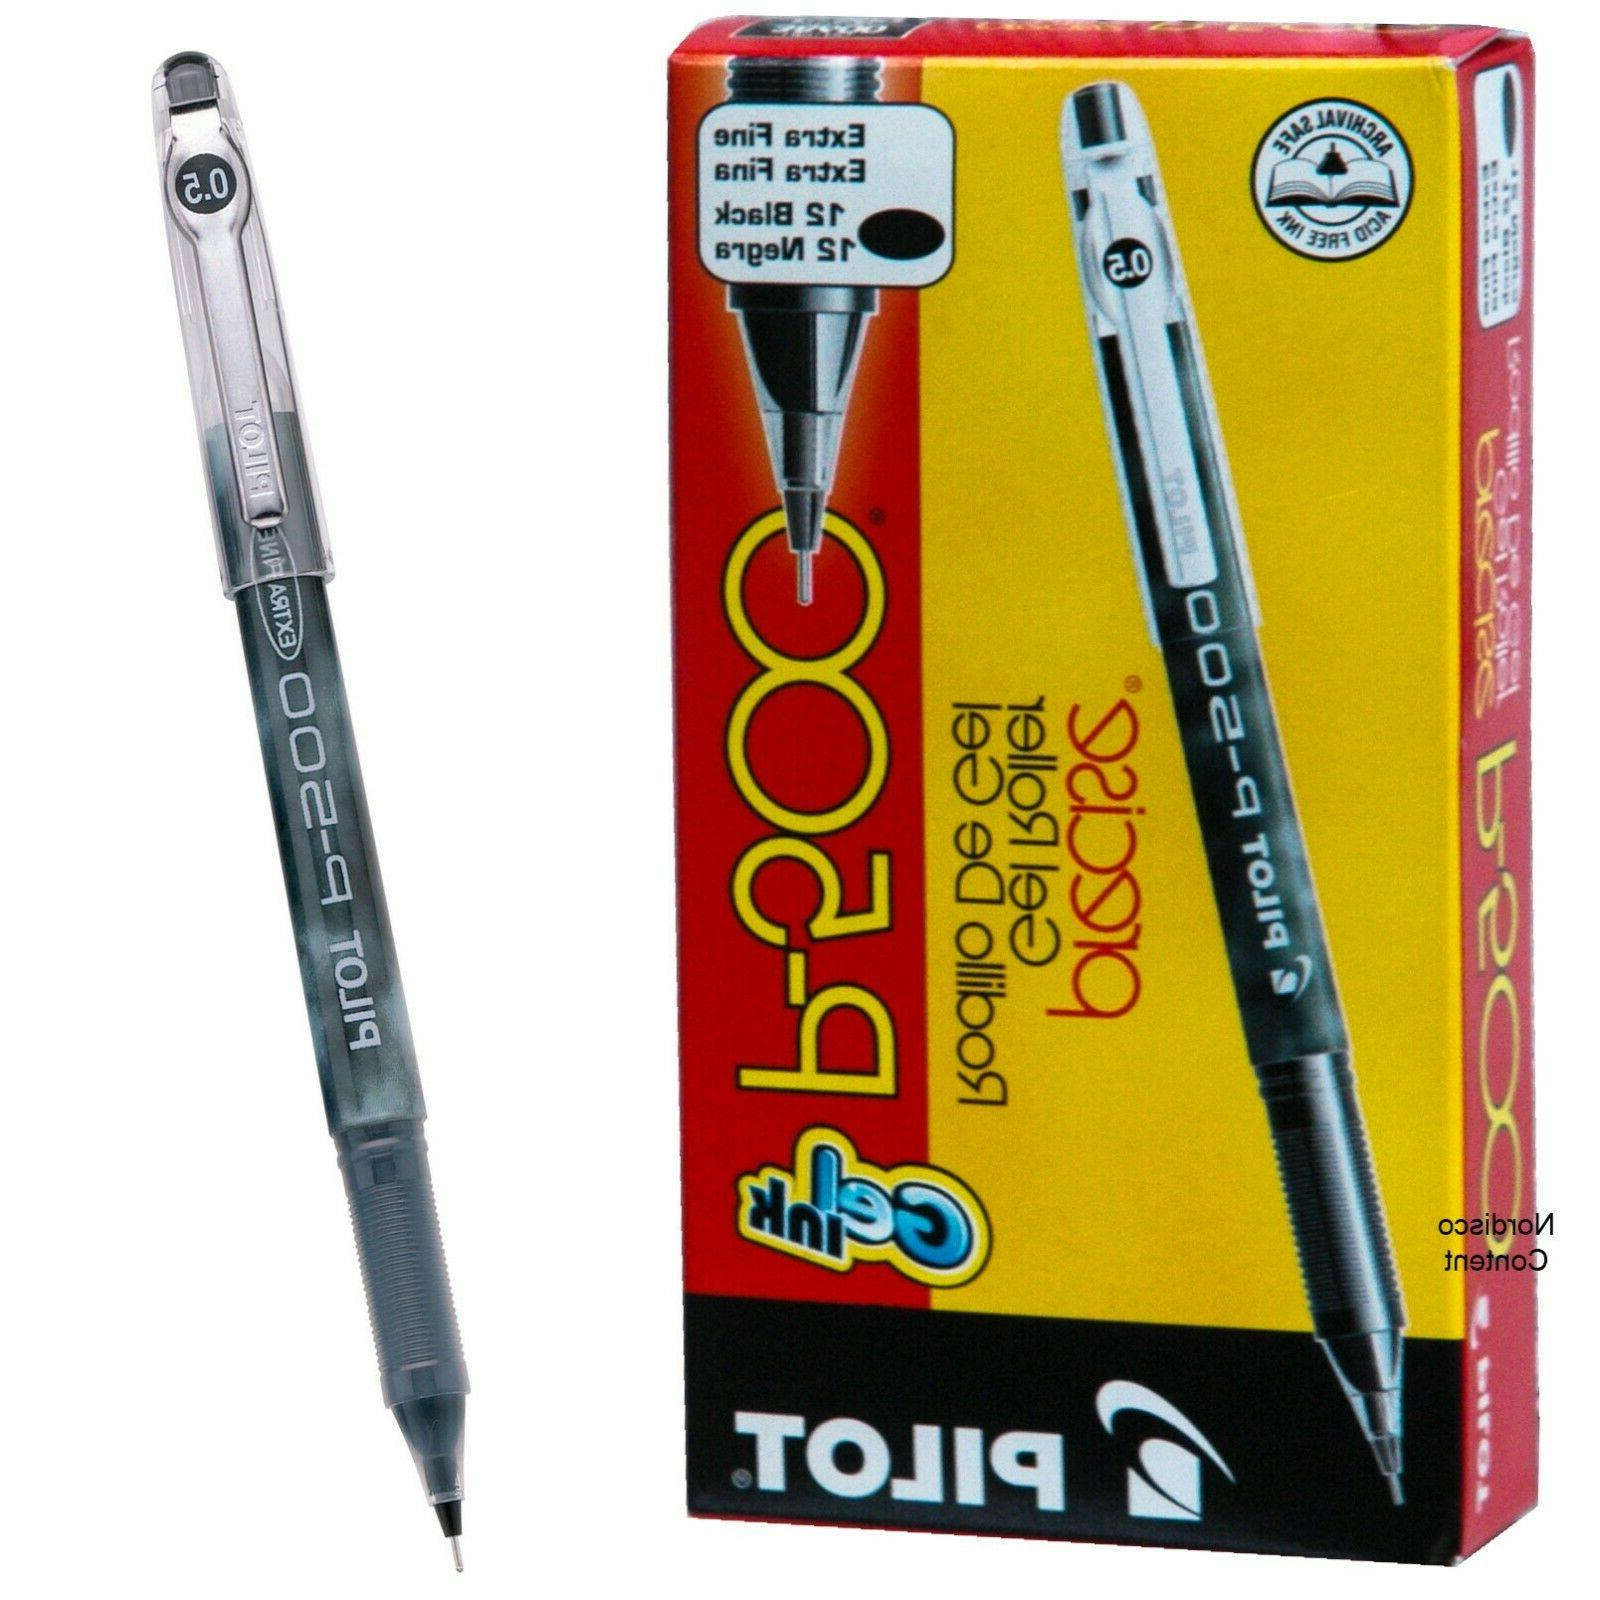 Pilot P-500 Gel Ink Rollerball Pens, 0.5 mm, Extra Fine Poin